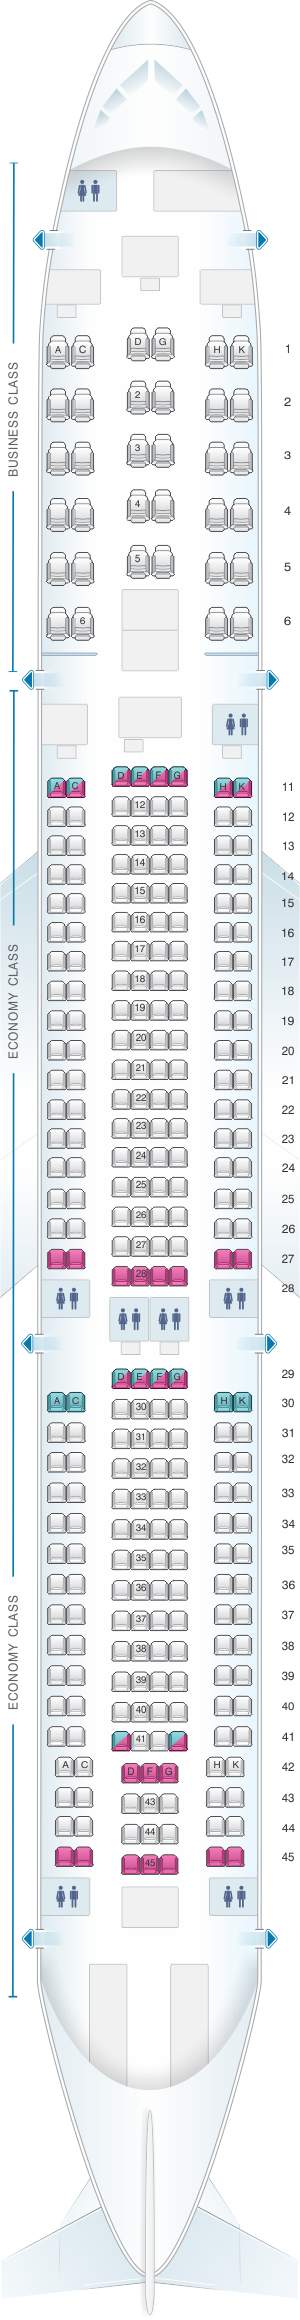 Seat map for Aeroflot Russian Airlines Airbus A330 300 Config.1